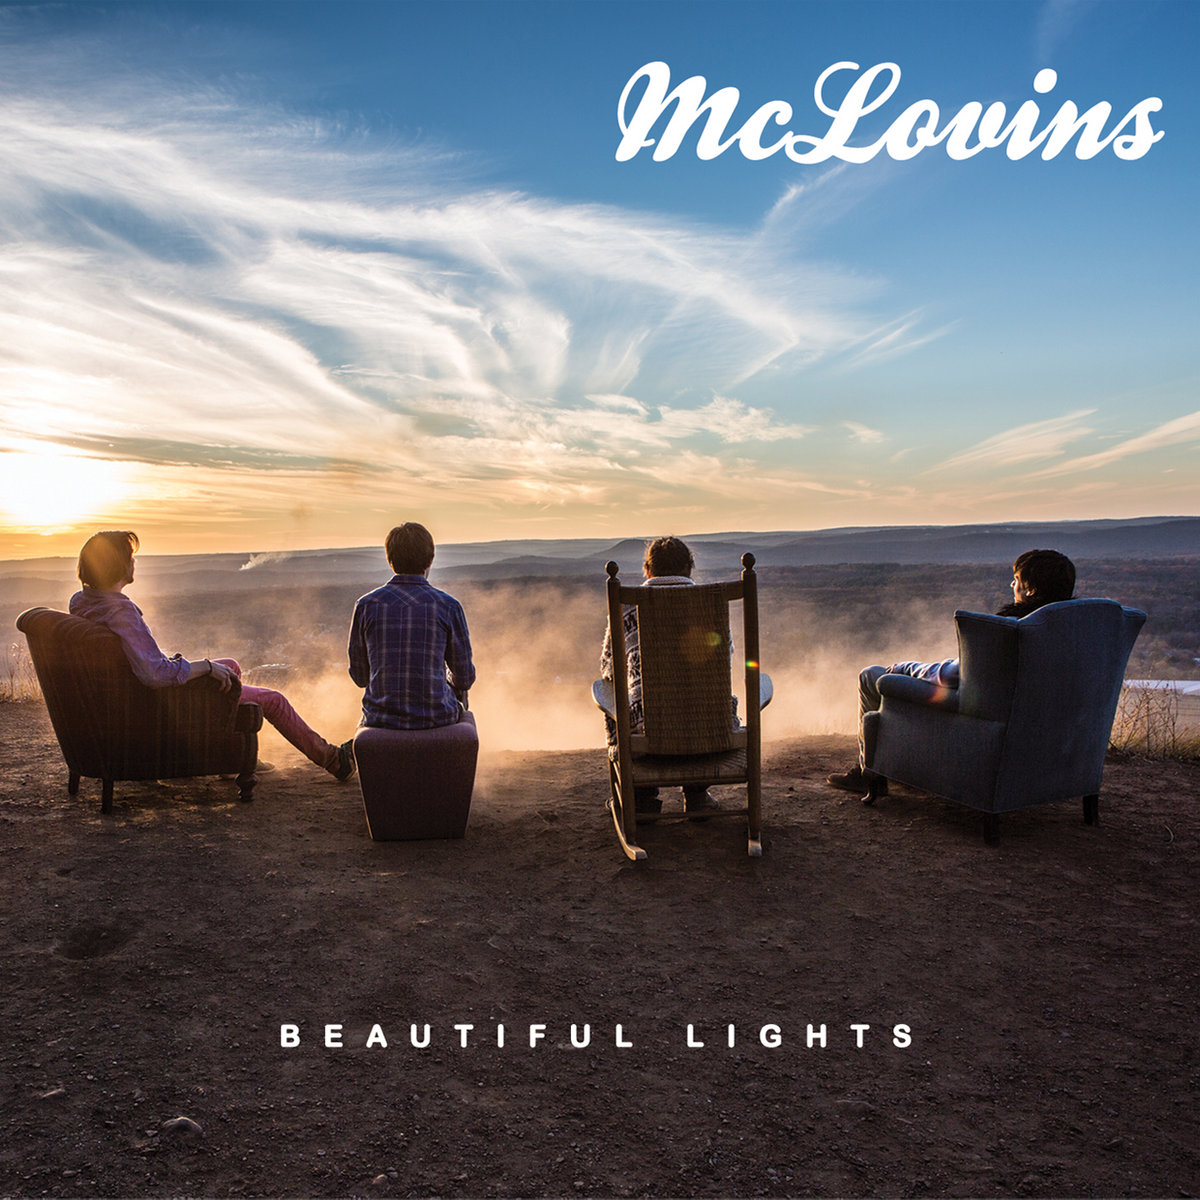 beautiful lights | mclovins